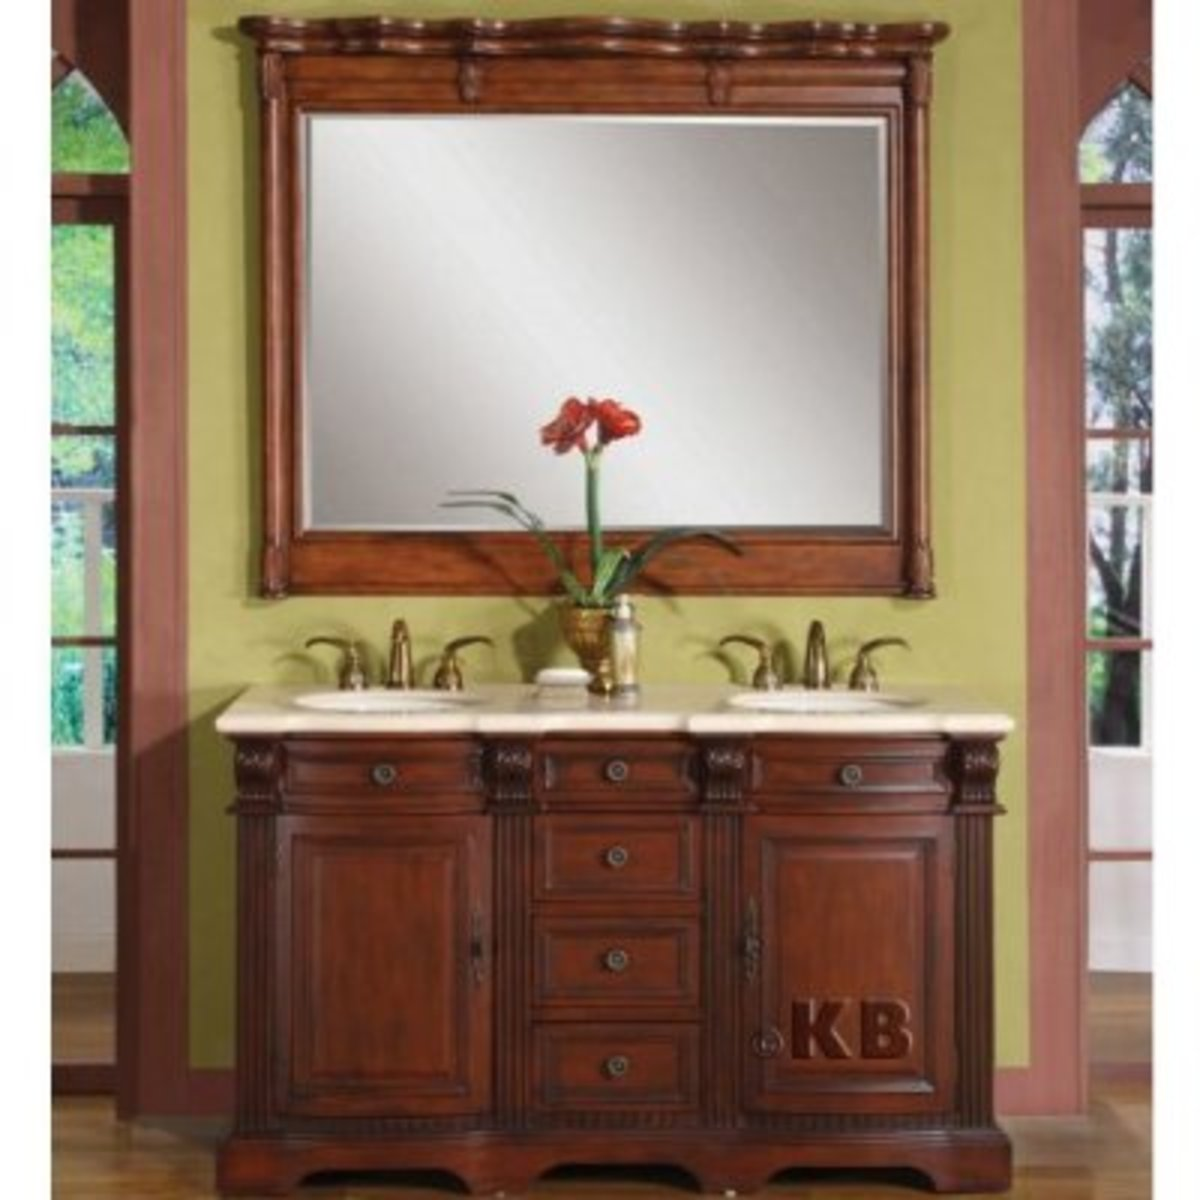 Double bathroom sinks in a traditional vanity.